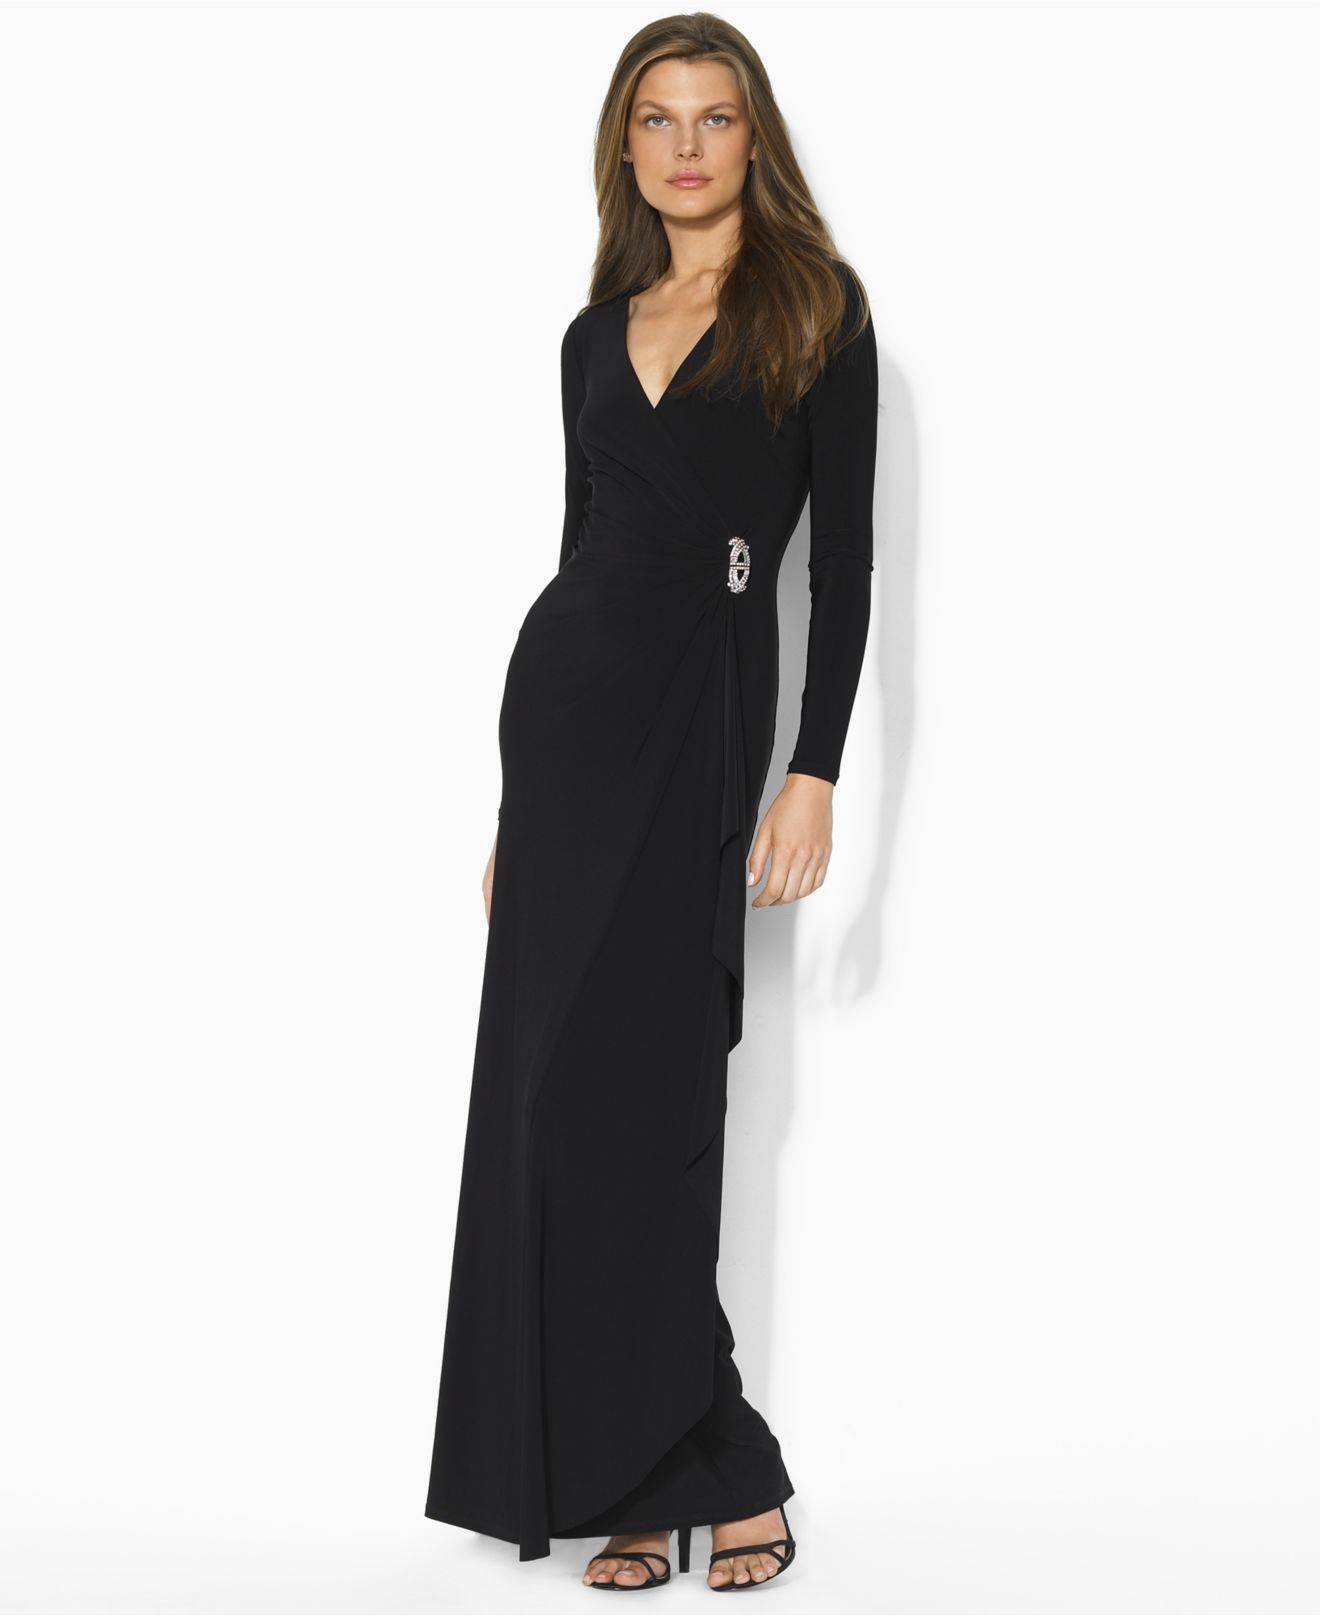 65f1774b799d Lauren by Ralph Lauren Dress, Long Sleeve Evening Gown - Womens Dresses -  Macy's